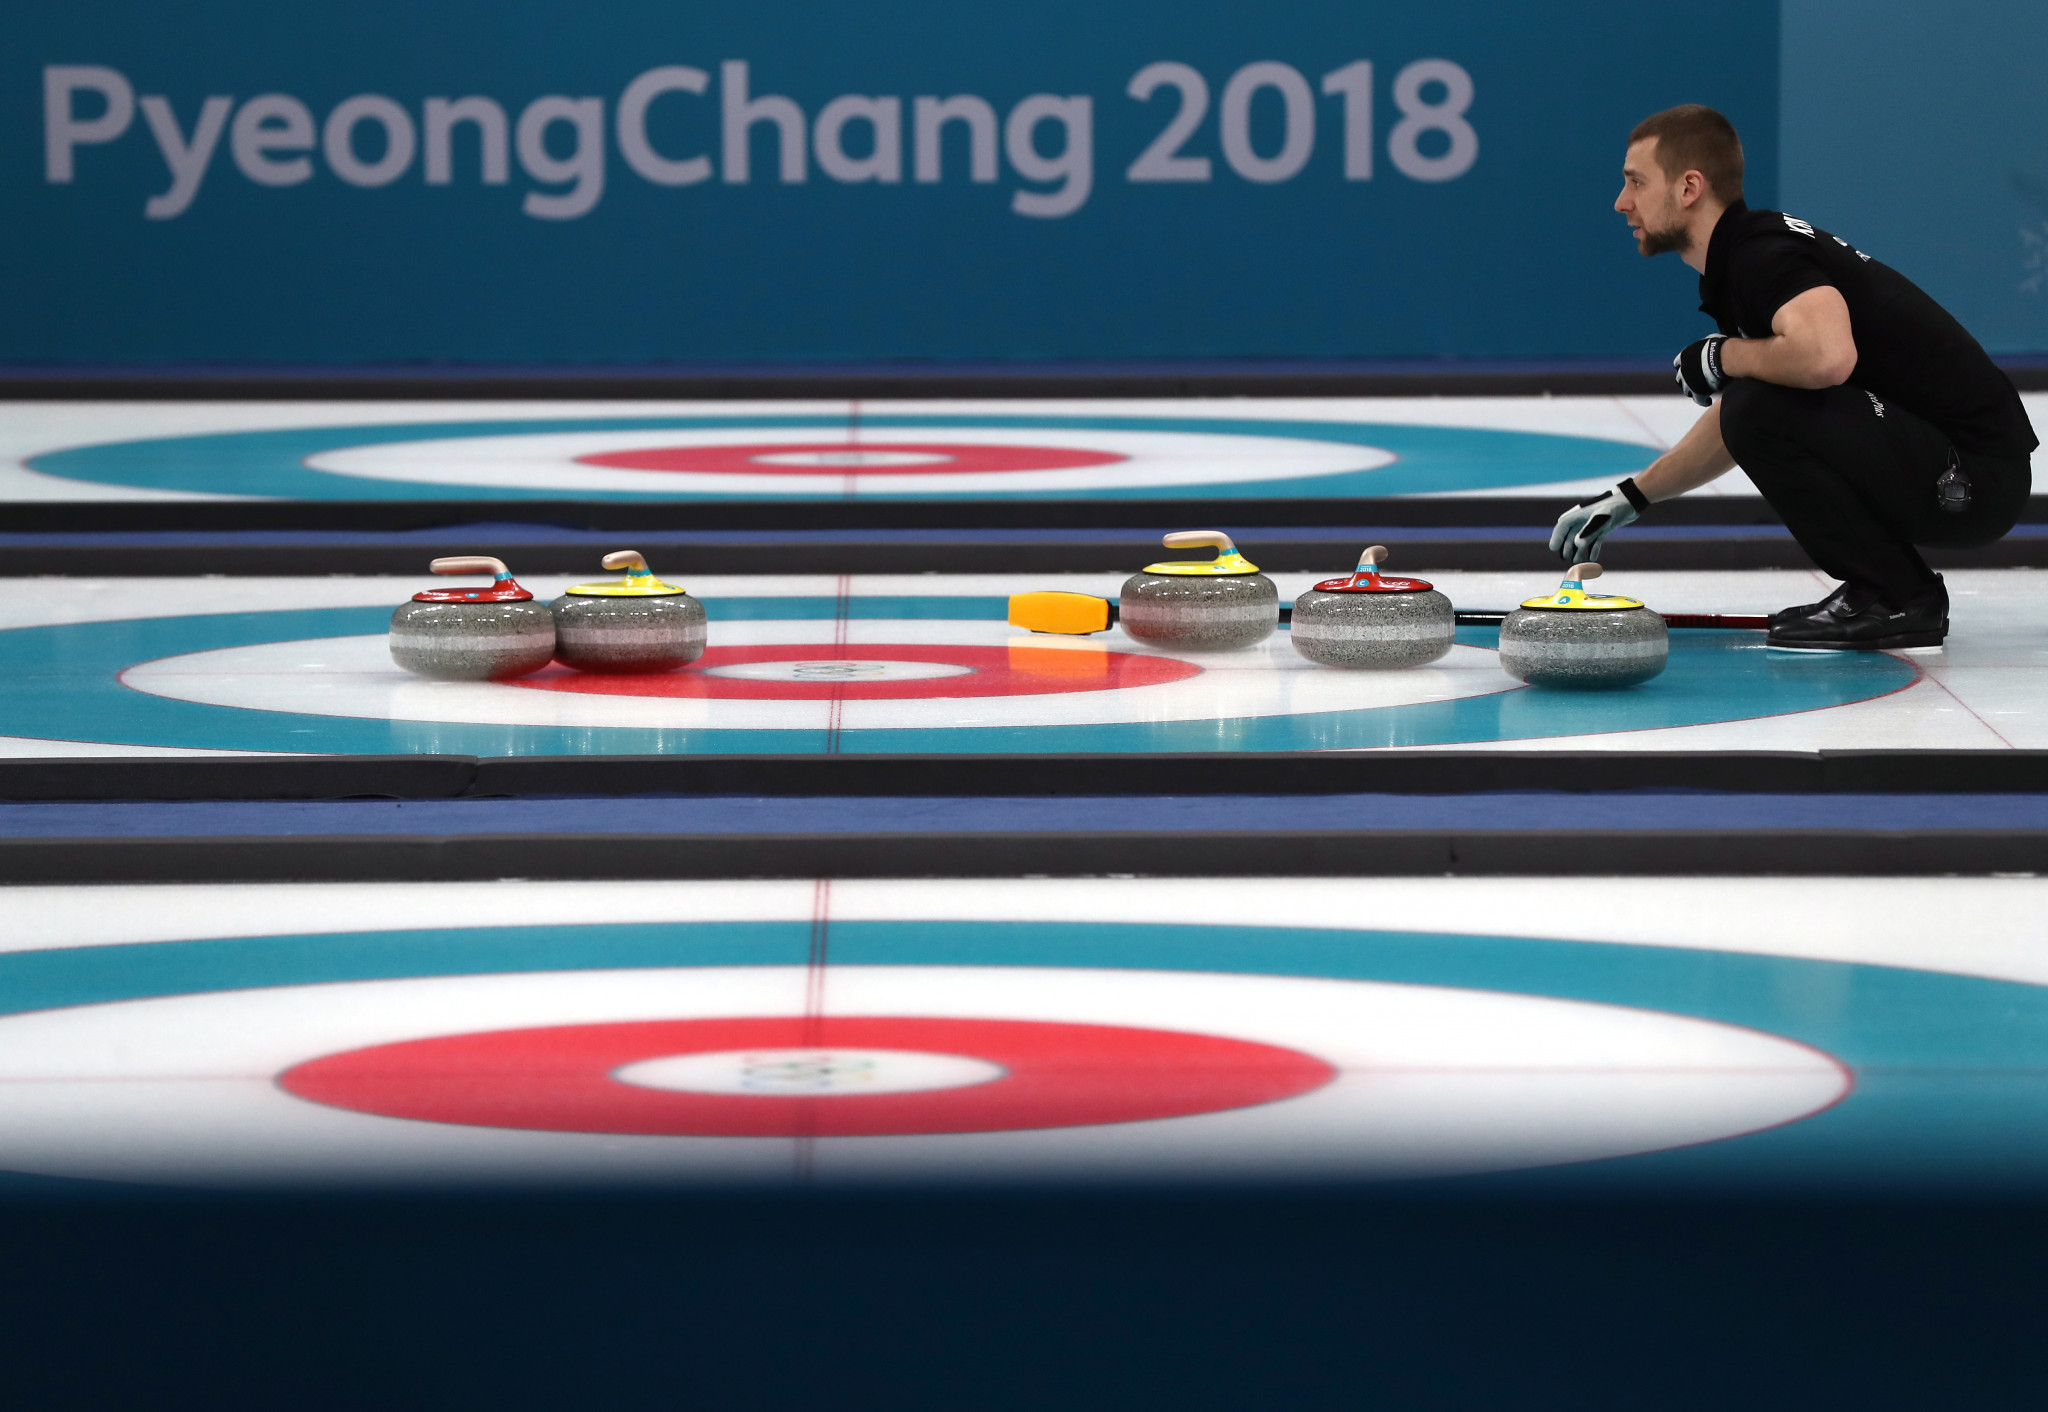 Aleksandr Krushelnitckii was stripped of the Pyeongchang 2018 bronze medal he won in the mixed doubles curling following a failed drugs test for meldonium ©Pyeongchang 2018